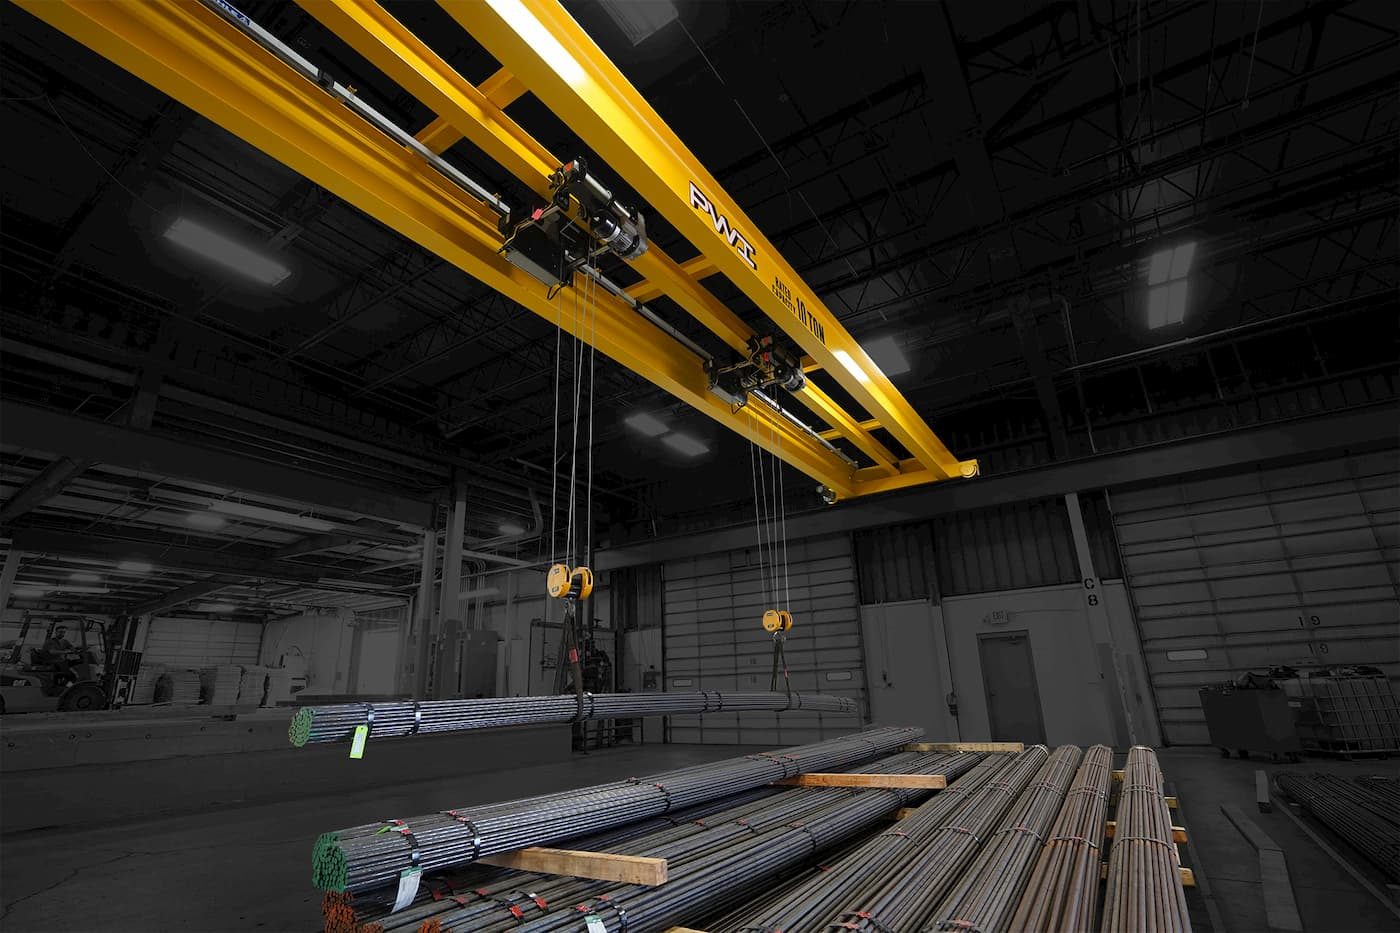 Overhead Cranes Lifting Material from Floor